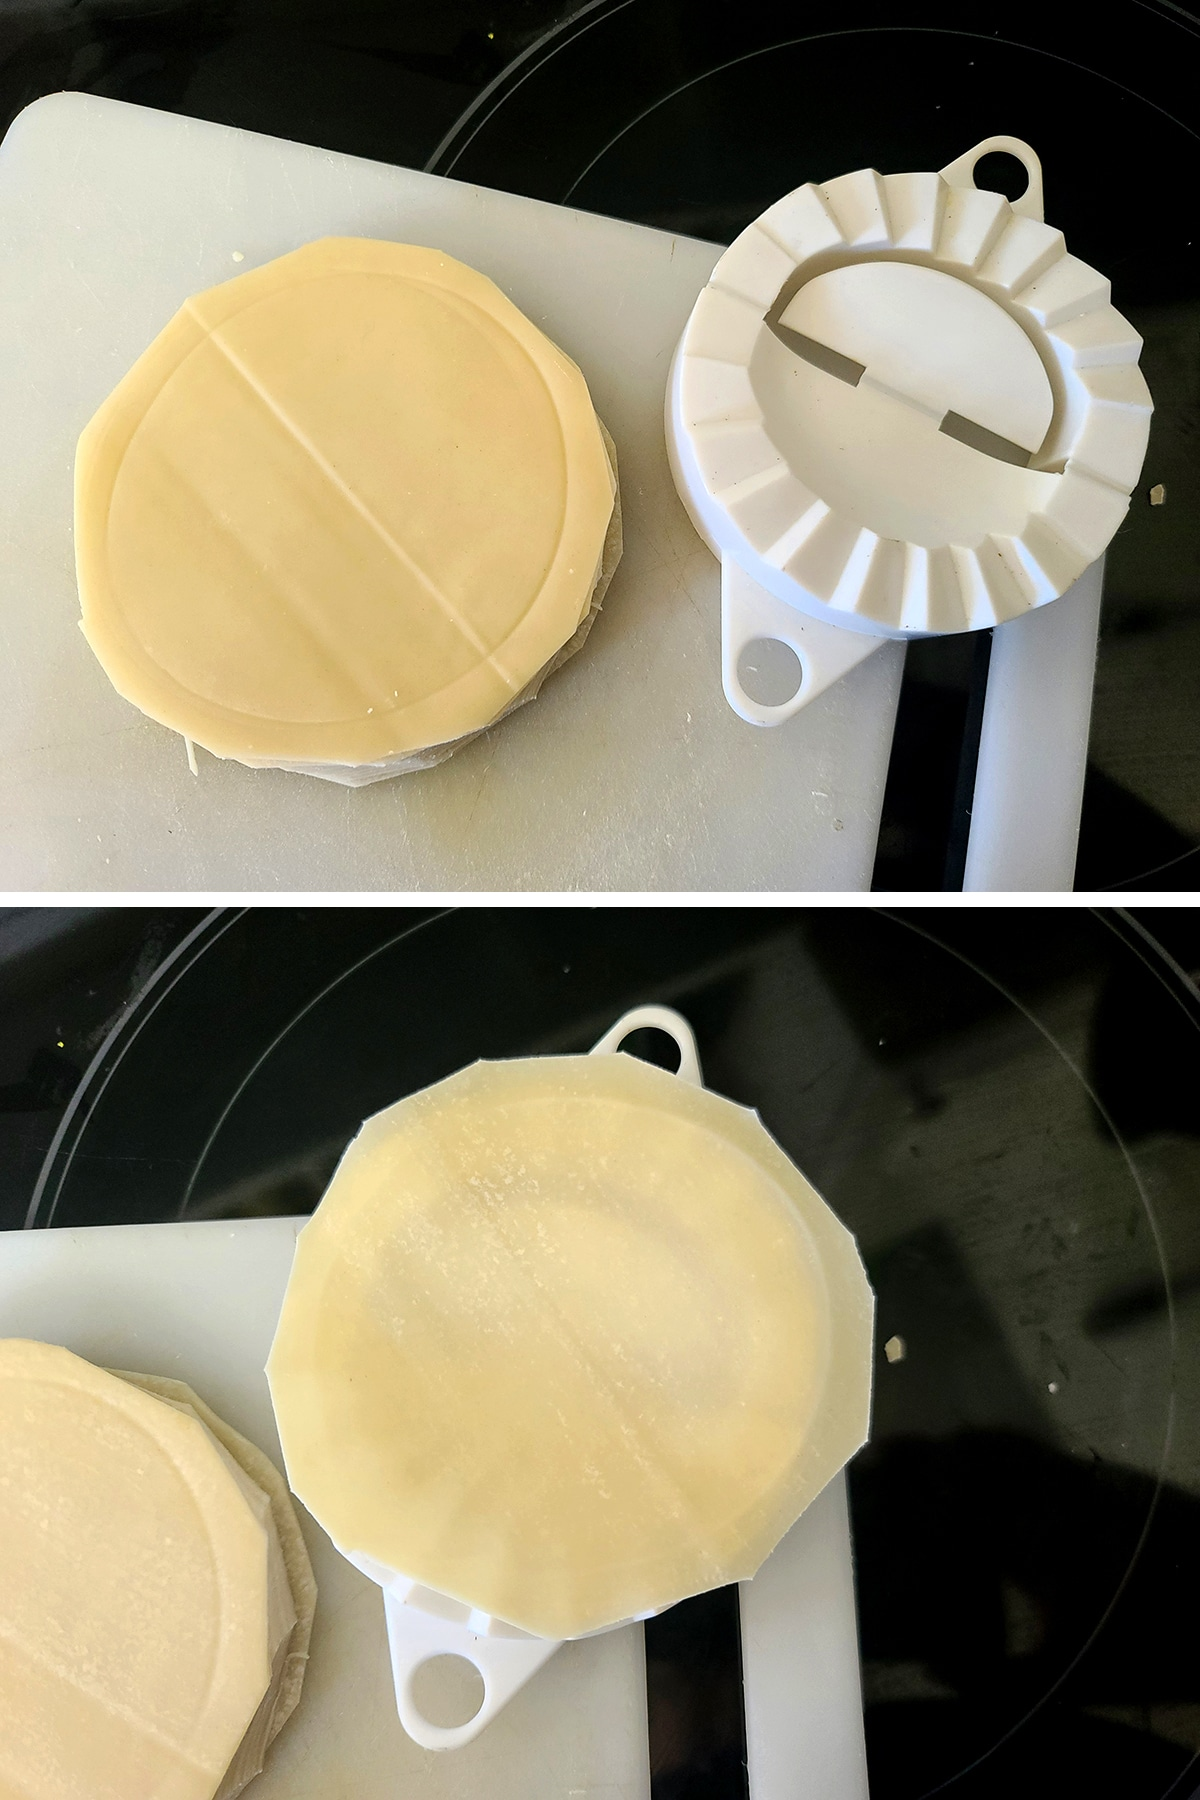 A two part image showing round freehand cut gyoza wrappers being sized up against a gyoza press.